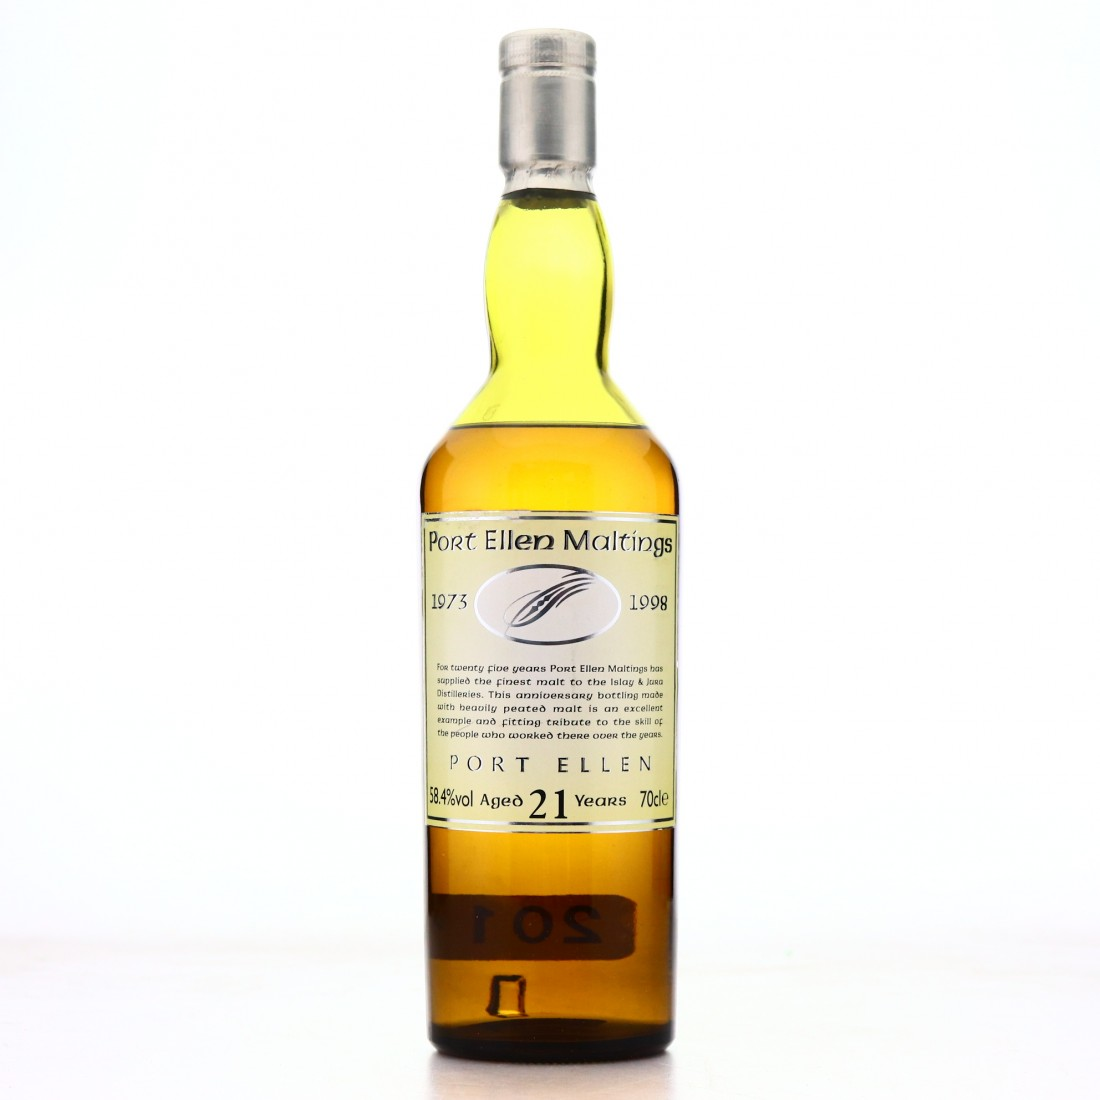 *Port Ellen 21 Year Old Maltings 25th Anniversary